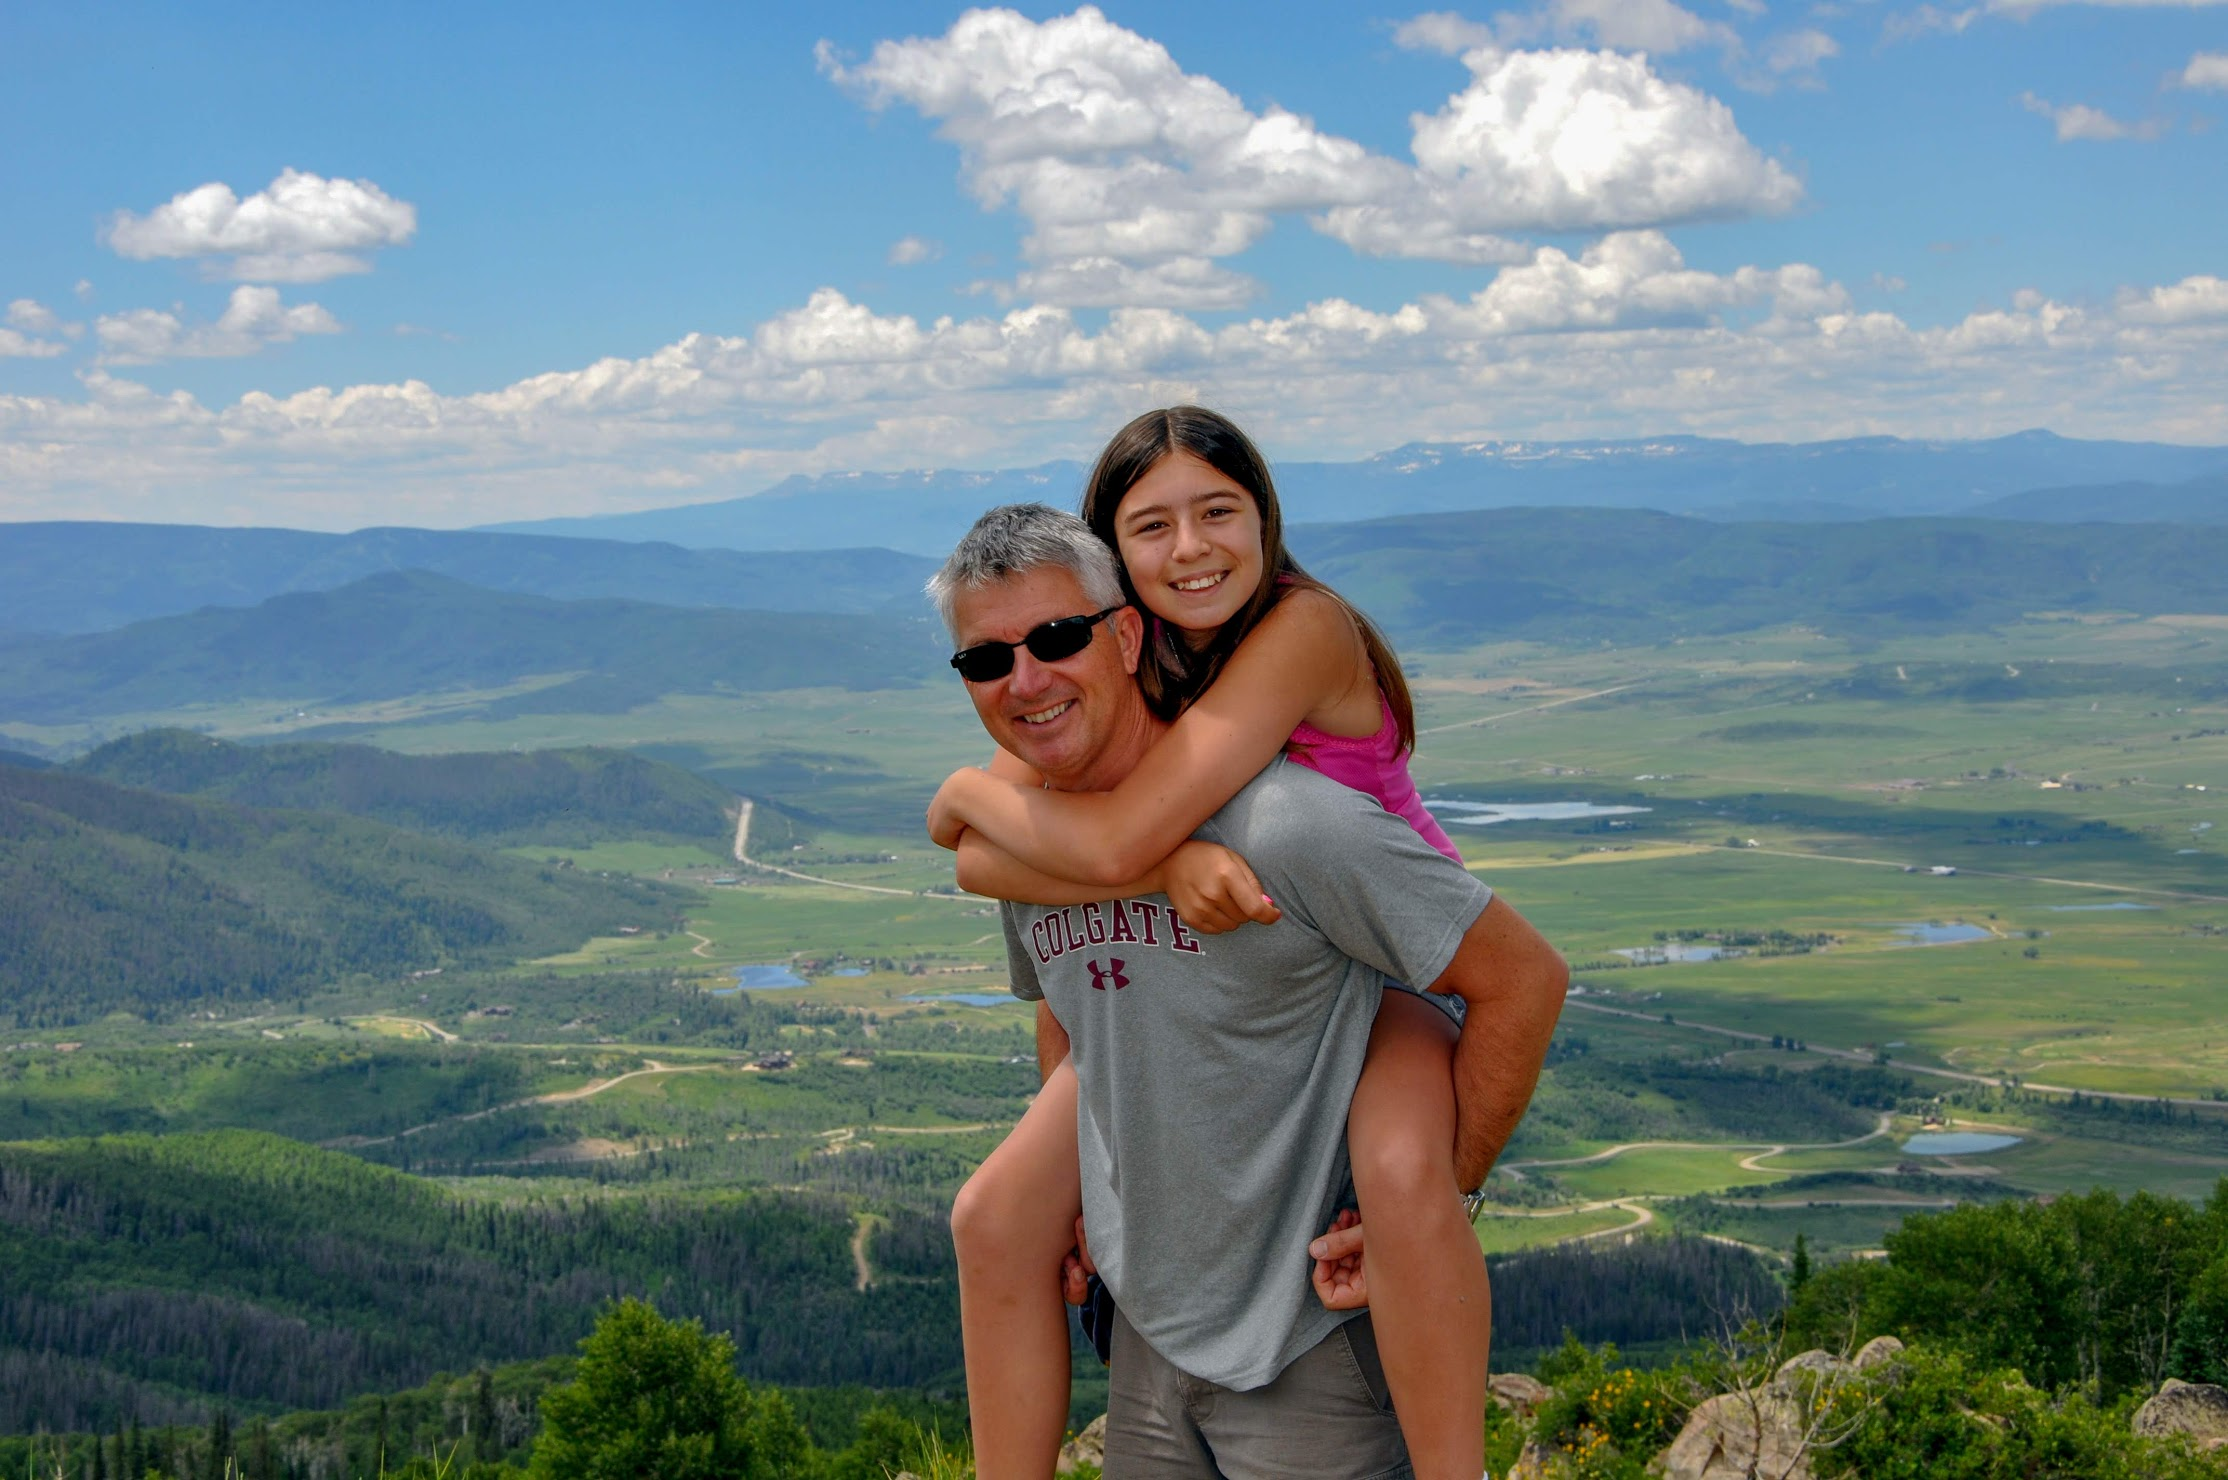 dad carrying daughter on piggyback on a mountain